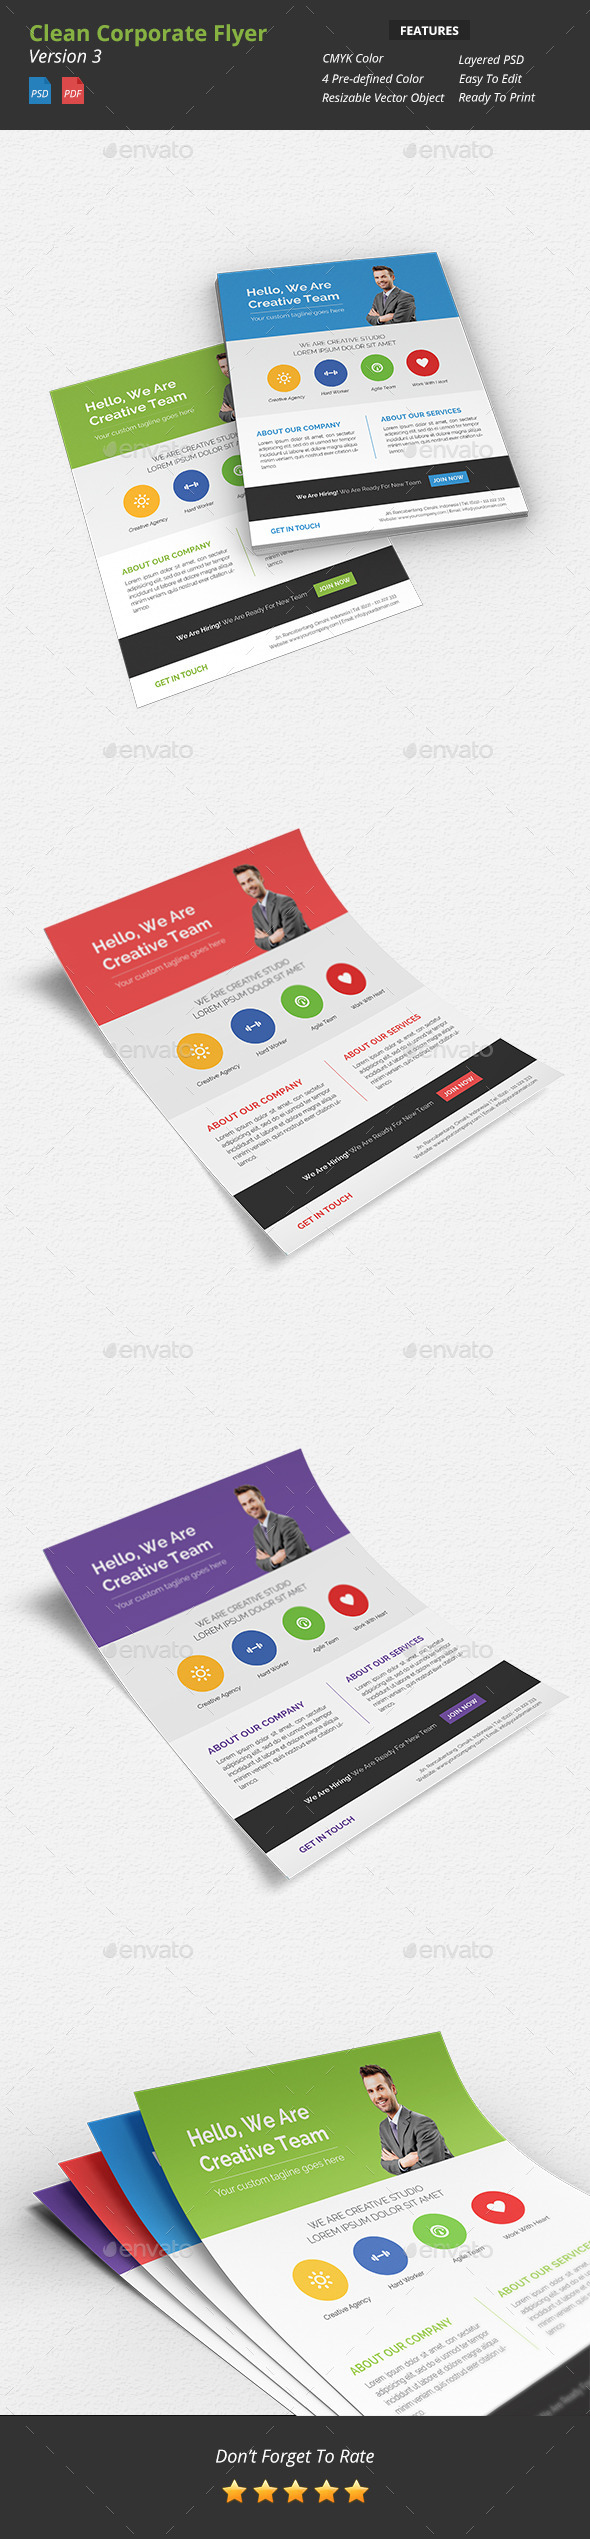 Clean Corporate Flyer v3 - Corporate Flyers